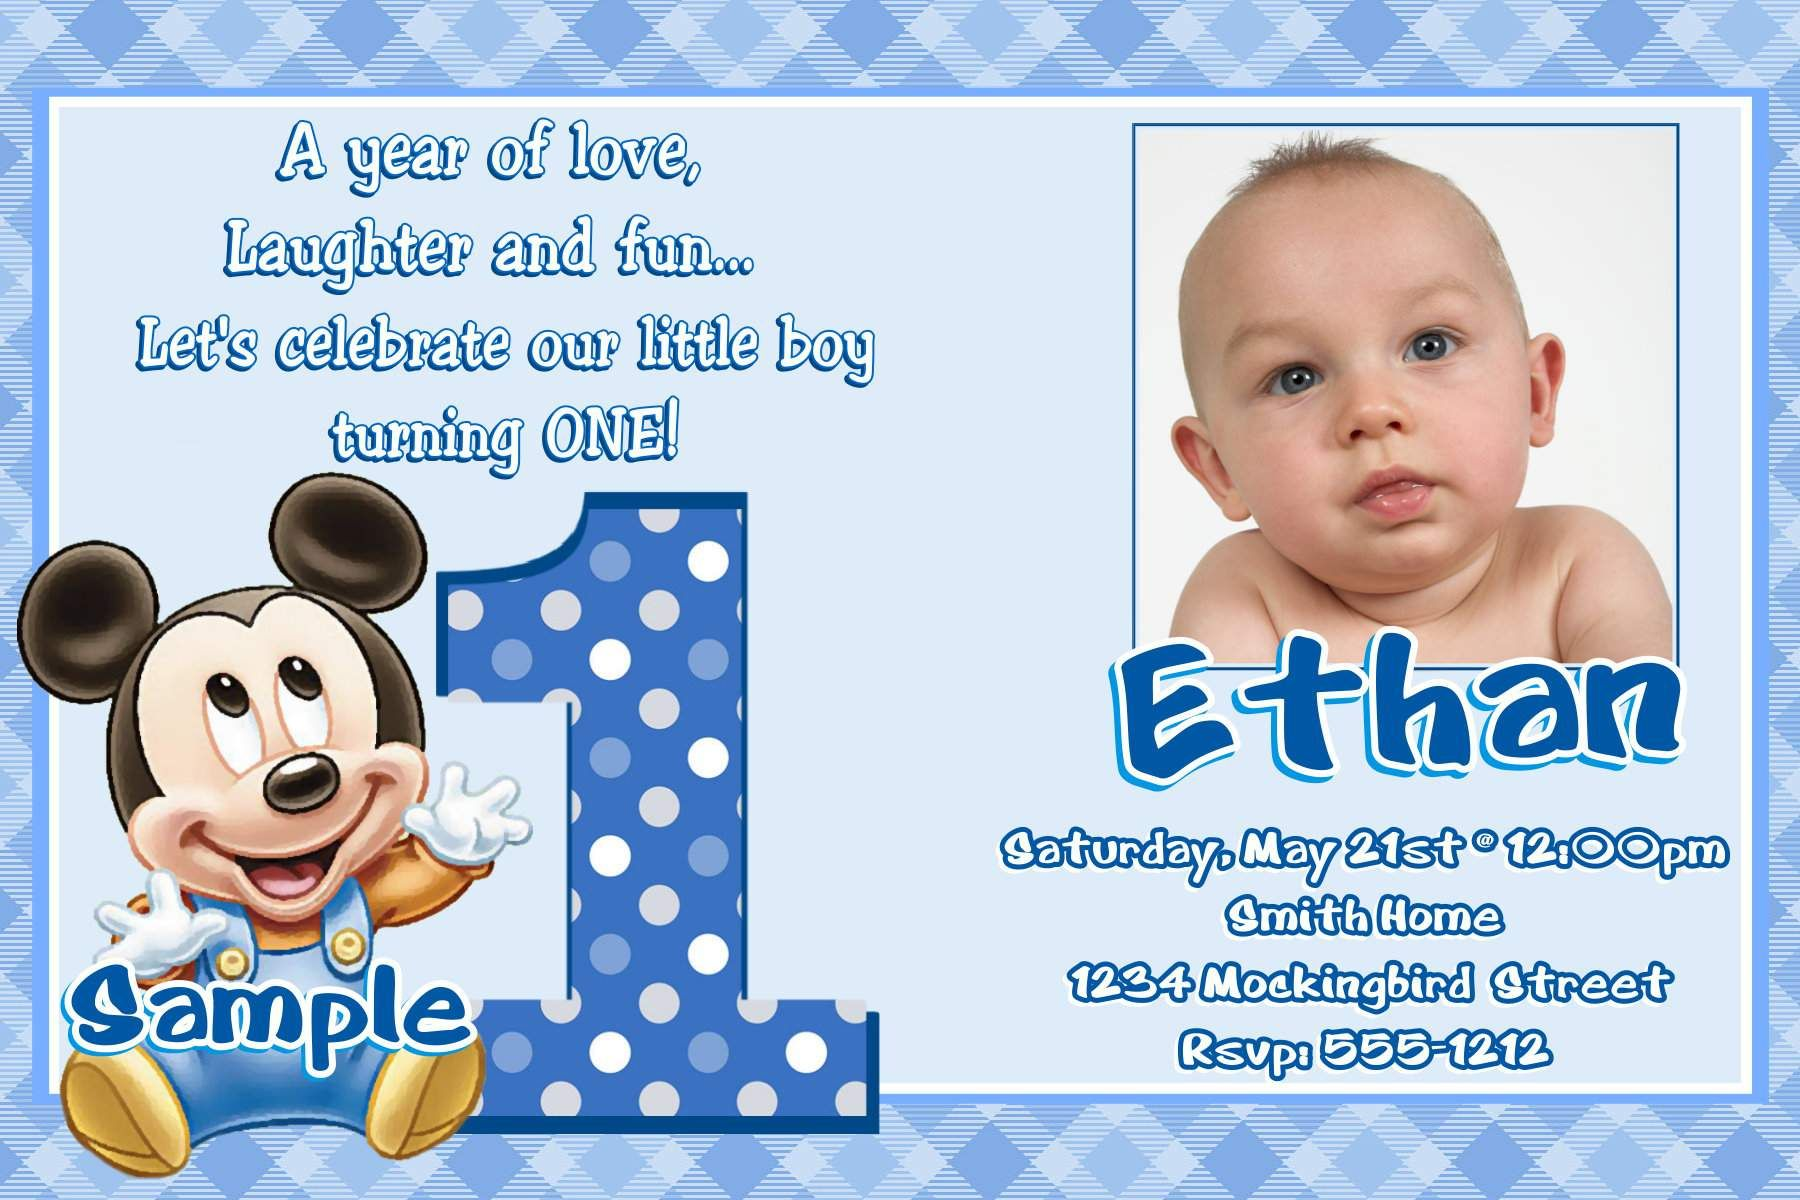 Image for Mickey Mouse Clubhouse 1st Birthday Invitations | ankita ...